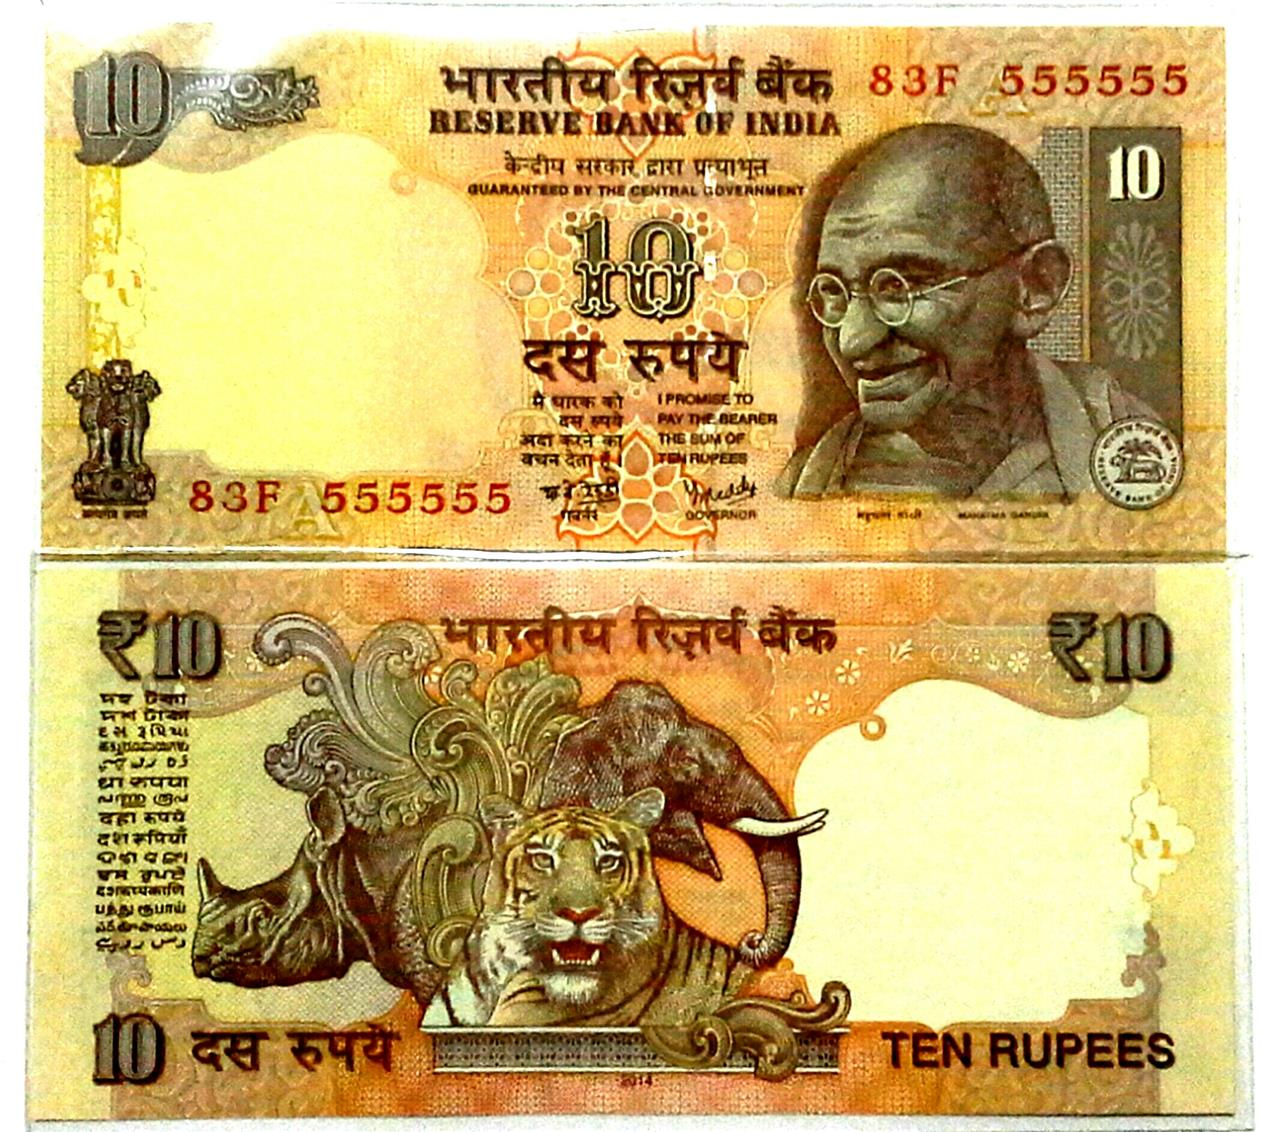 INDIA GANDHI 10 RUPEES SOLID NUMBER 83F 555555 BANKNOTE